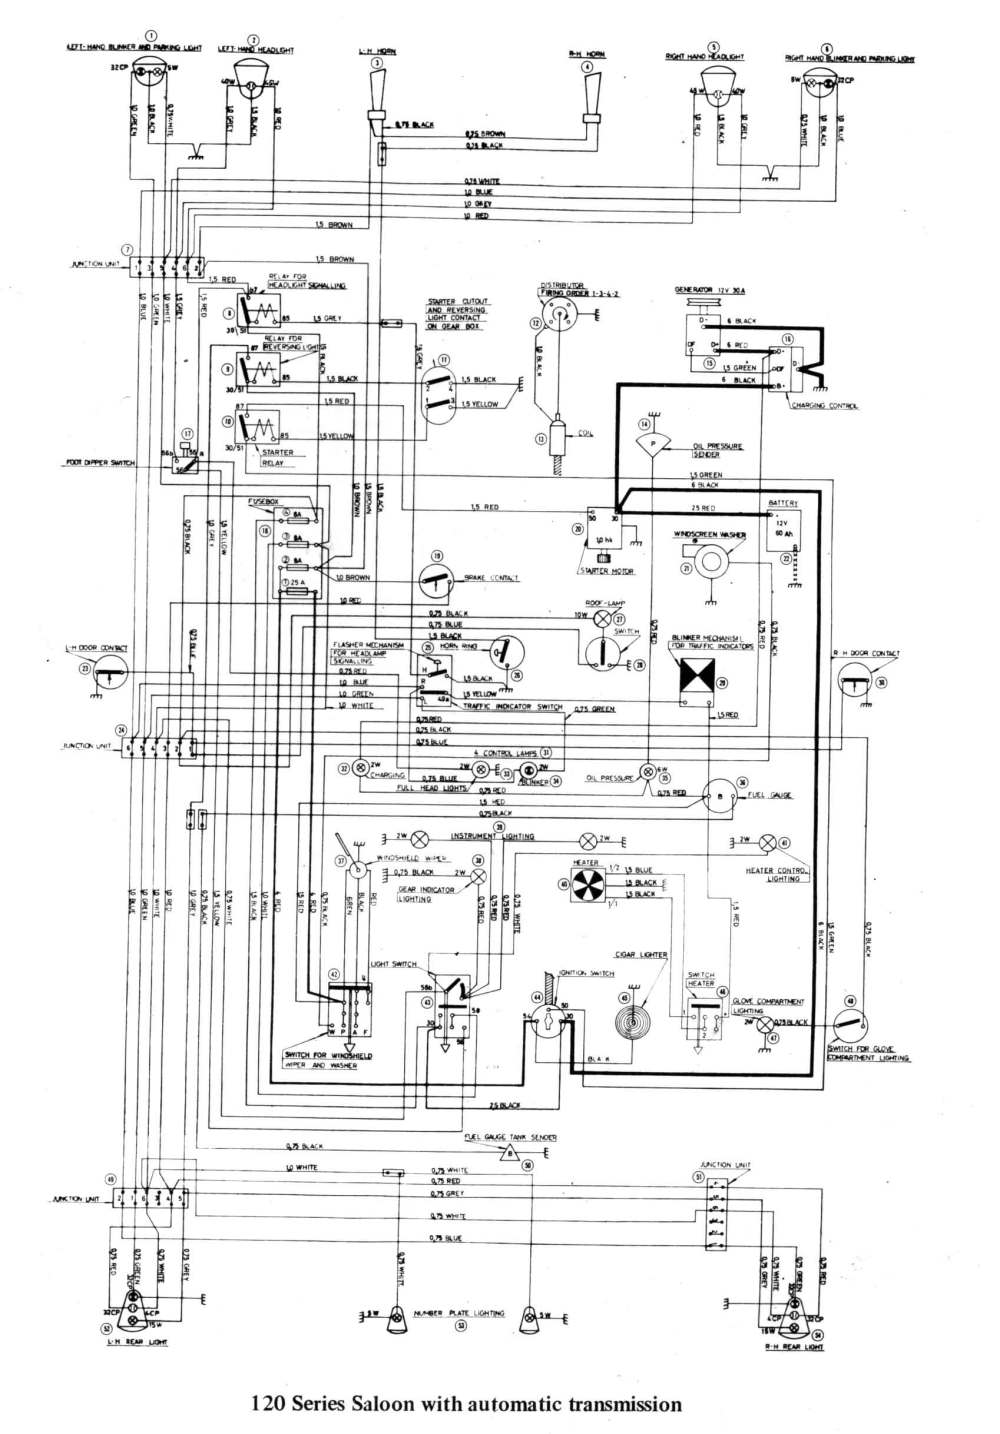 medium resolution of volvo v70 wiring diagram wiring diagram todays rh 17 15 7 1813weddingbarn com wiring diagram volvo 4 3l starter wiring diagram volvo v70 1998